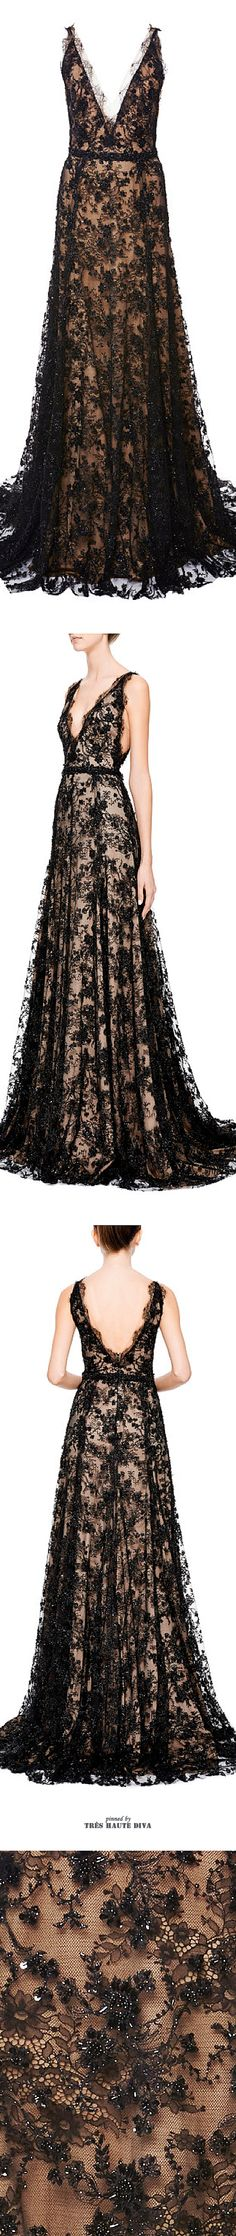 Marchesa Embroidered Chantilly Lace Gown SS 2015 ♔THD♔